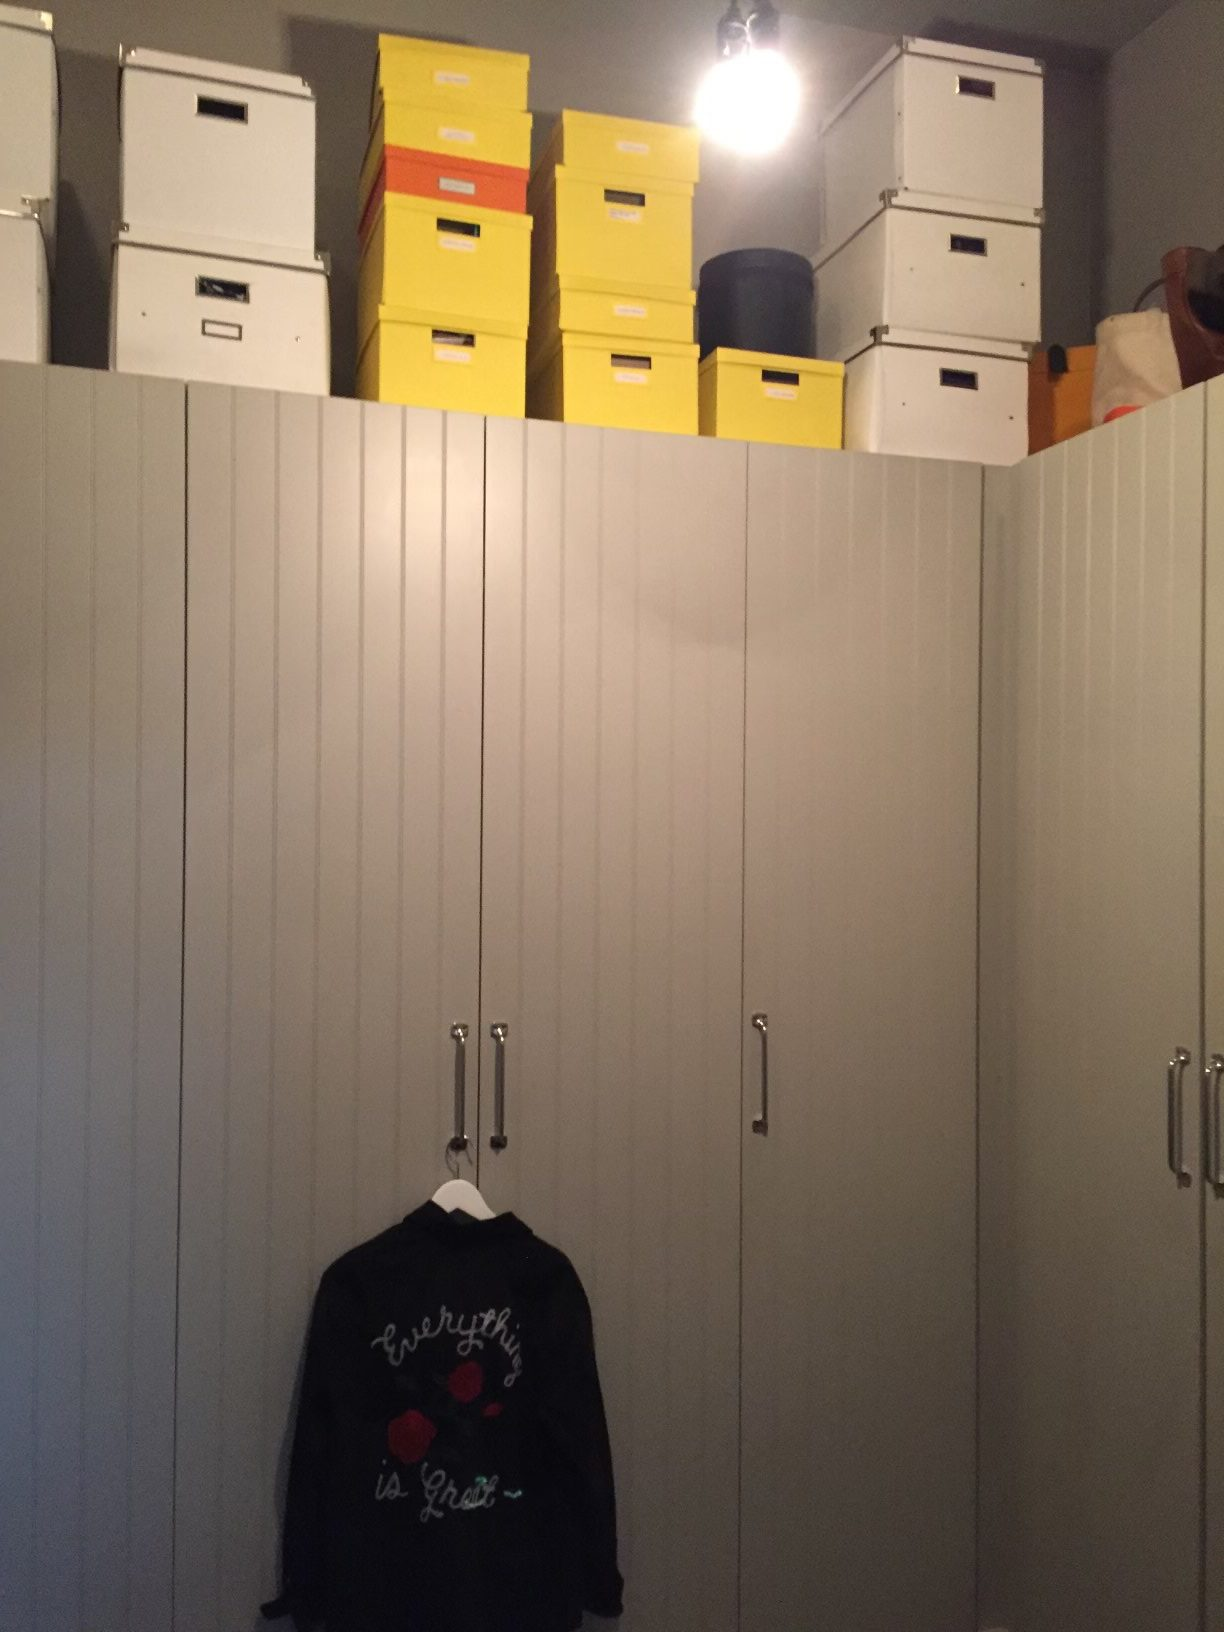 dim closet with doors and boxes on top